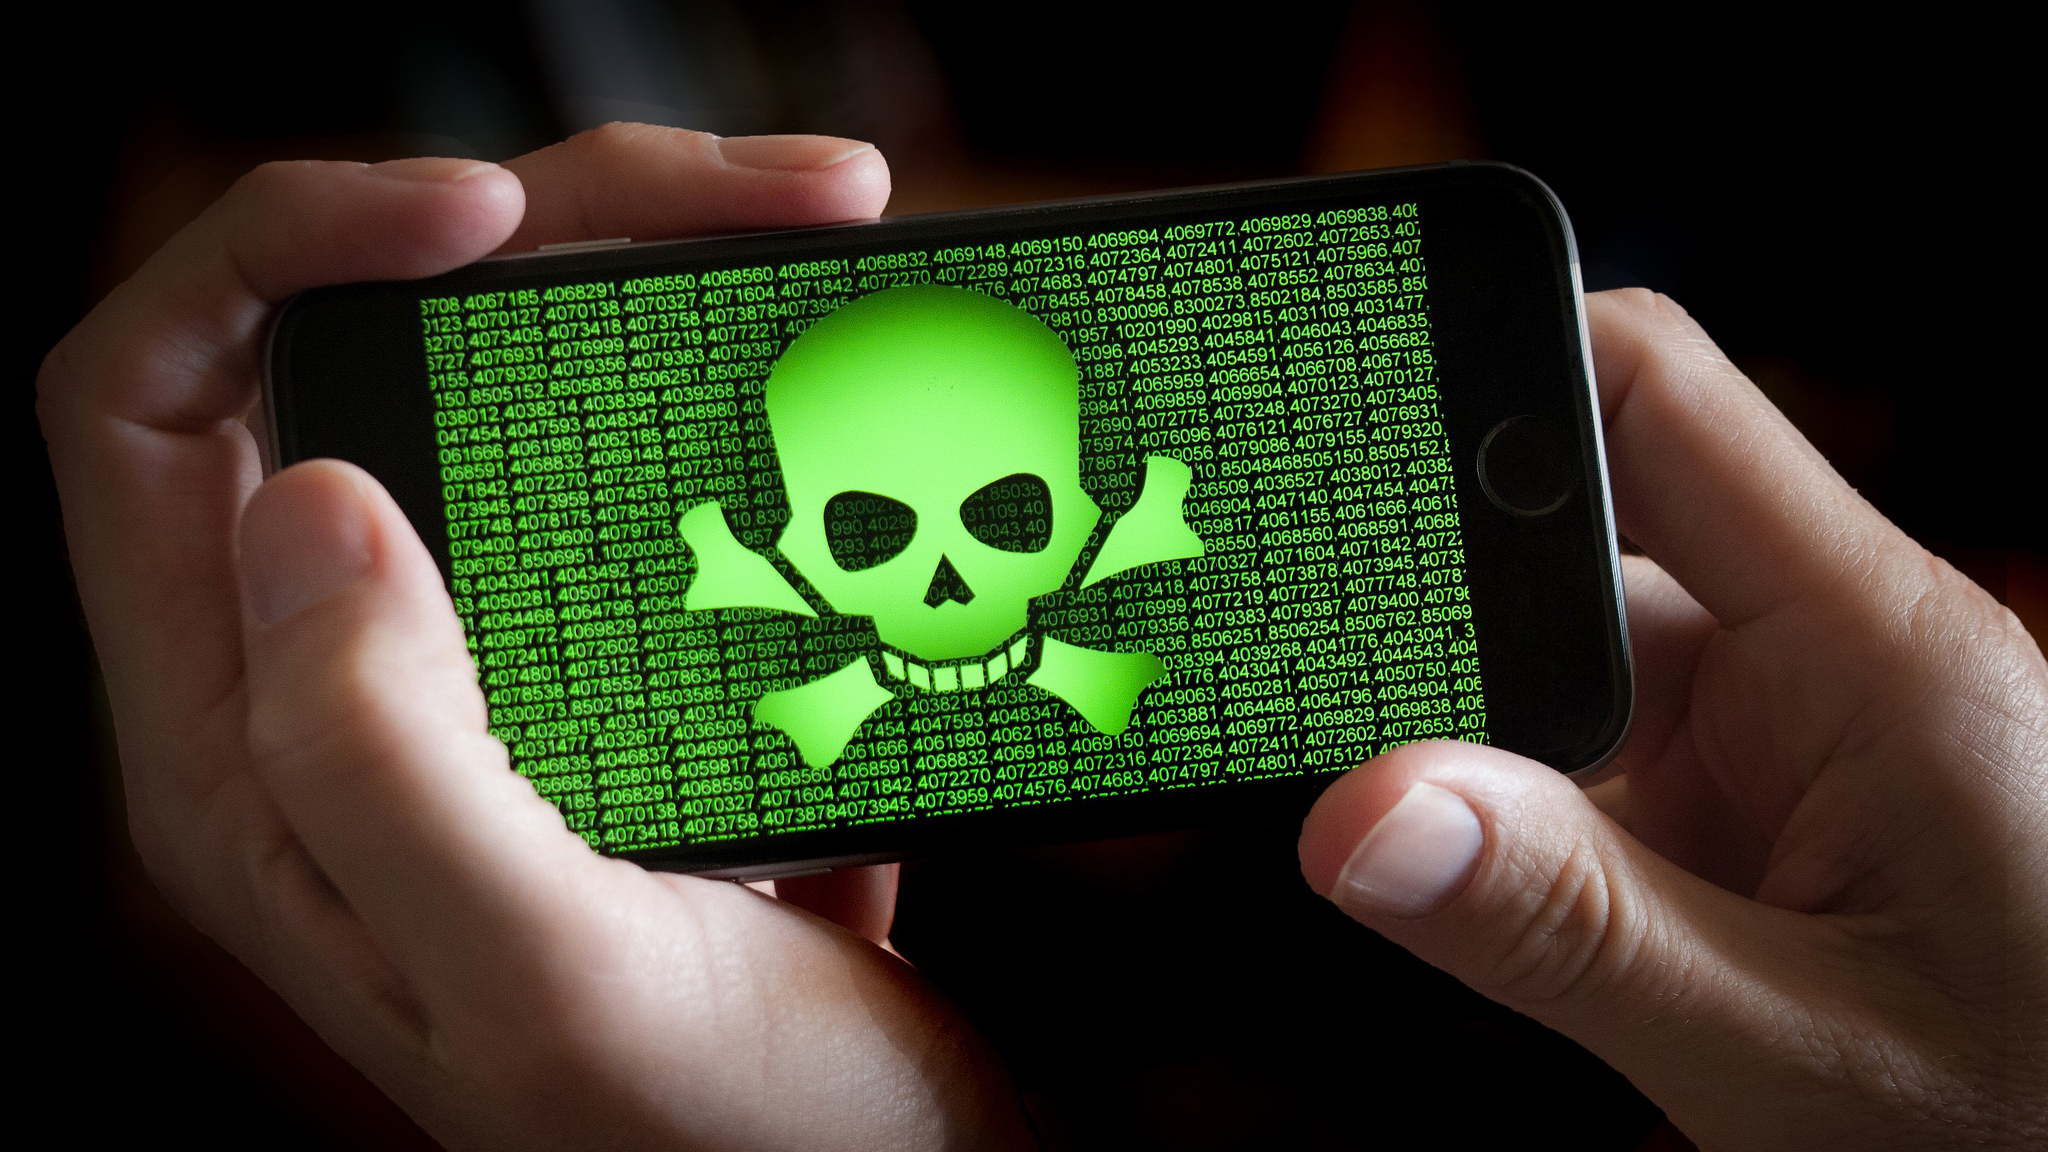 Almost all mobile apps vulnerable to malware | TechRadar